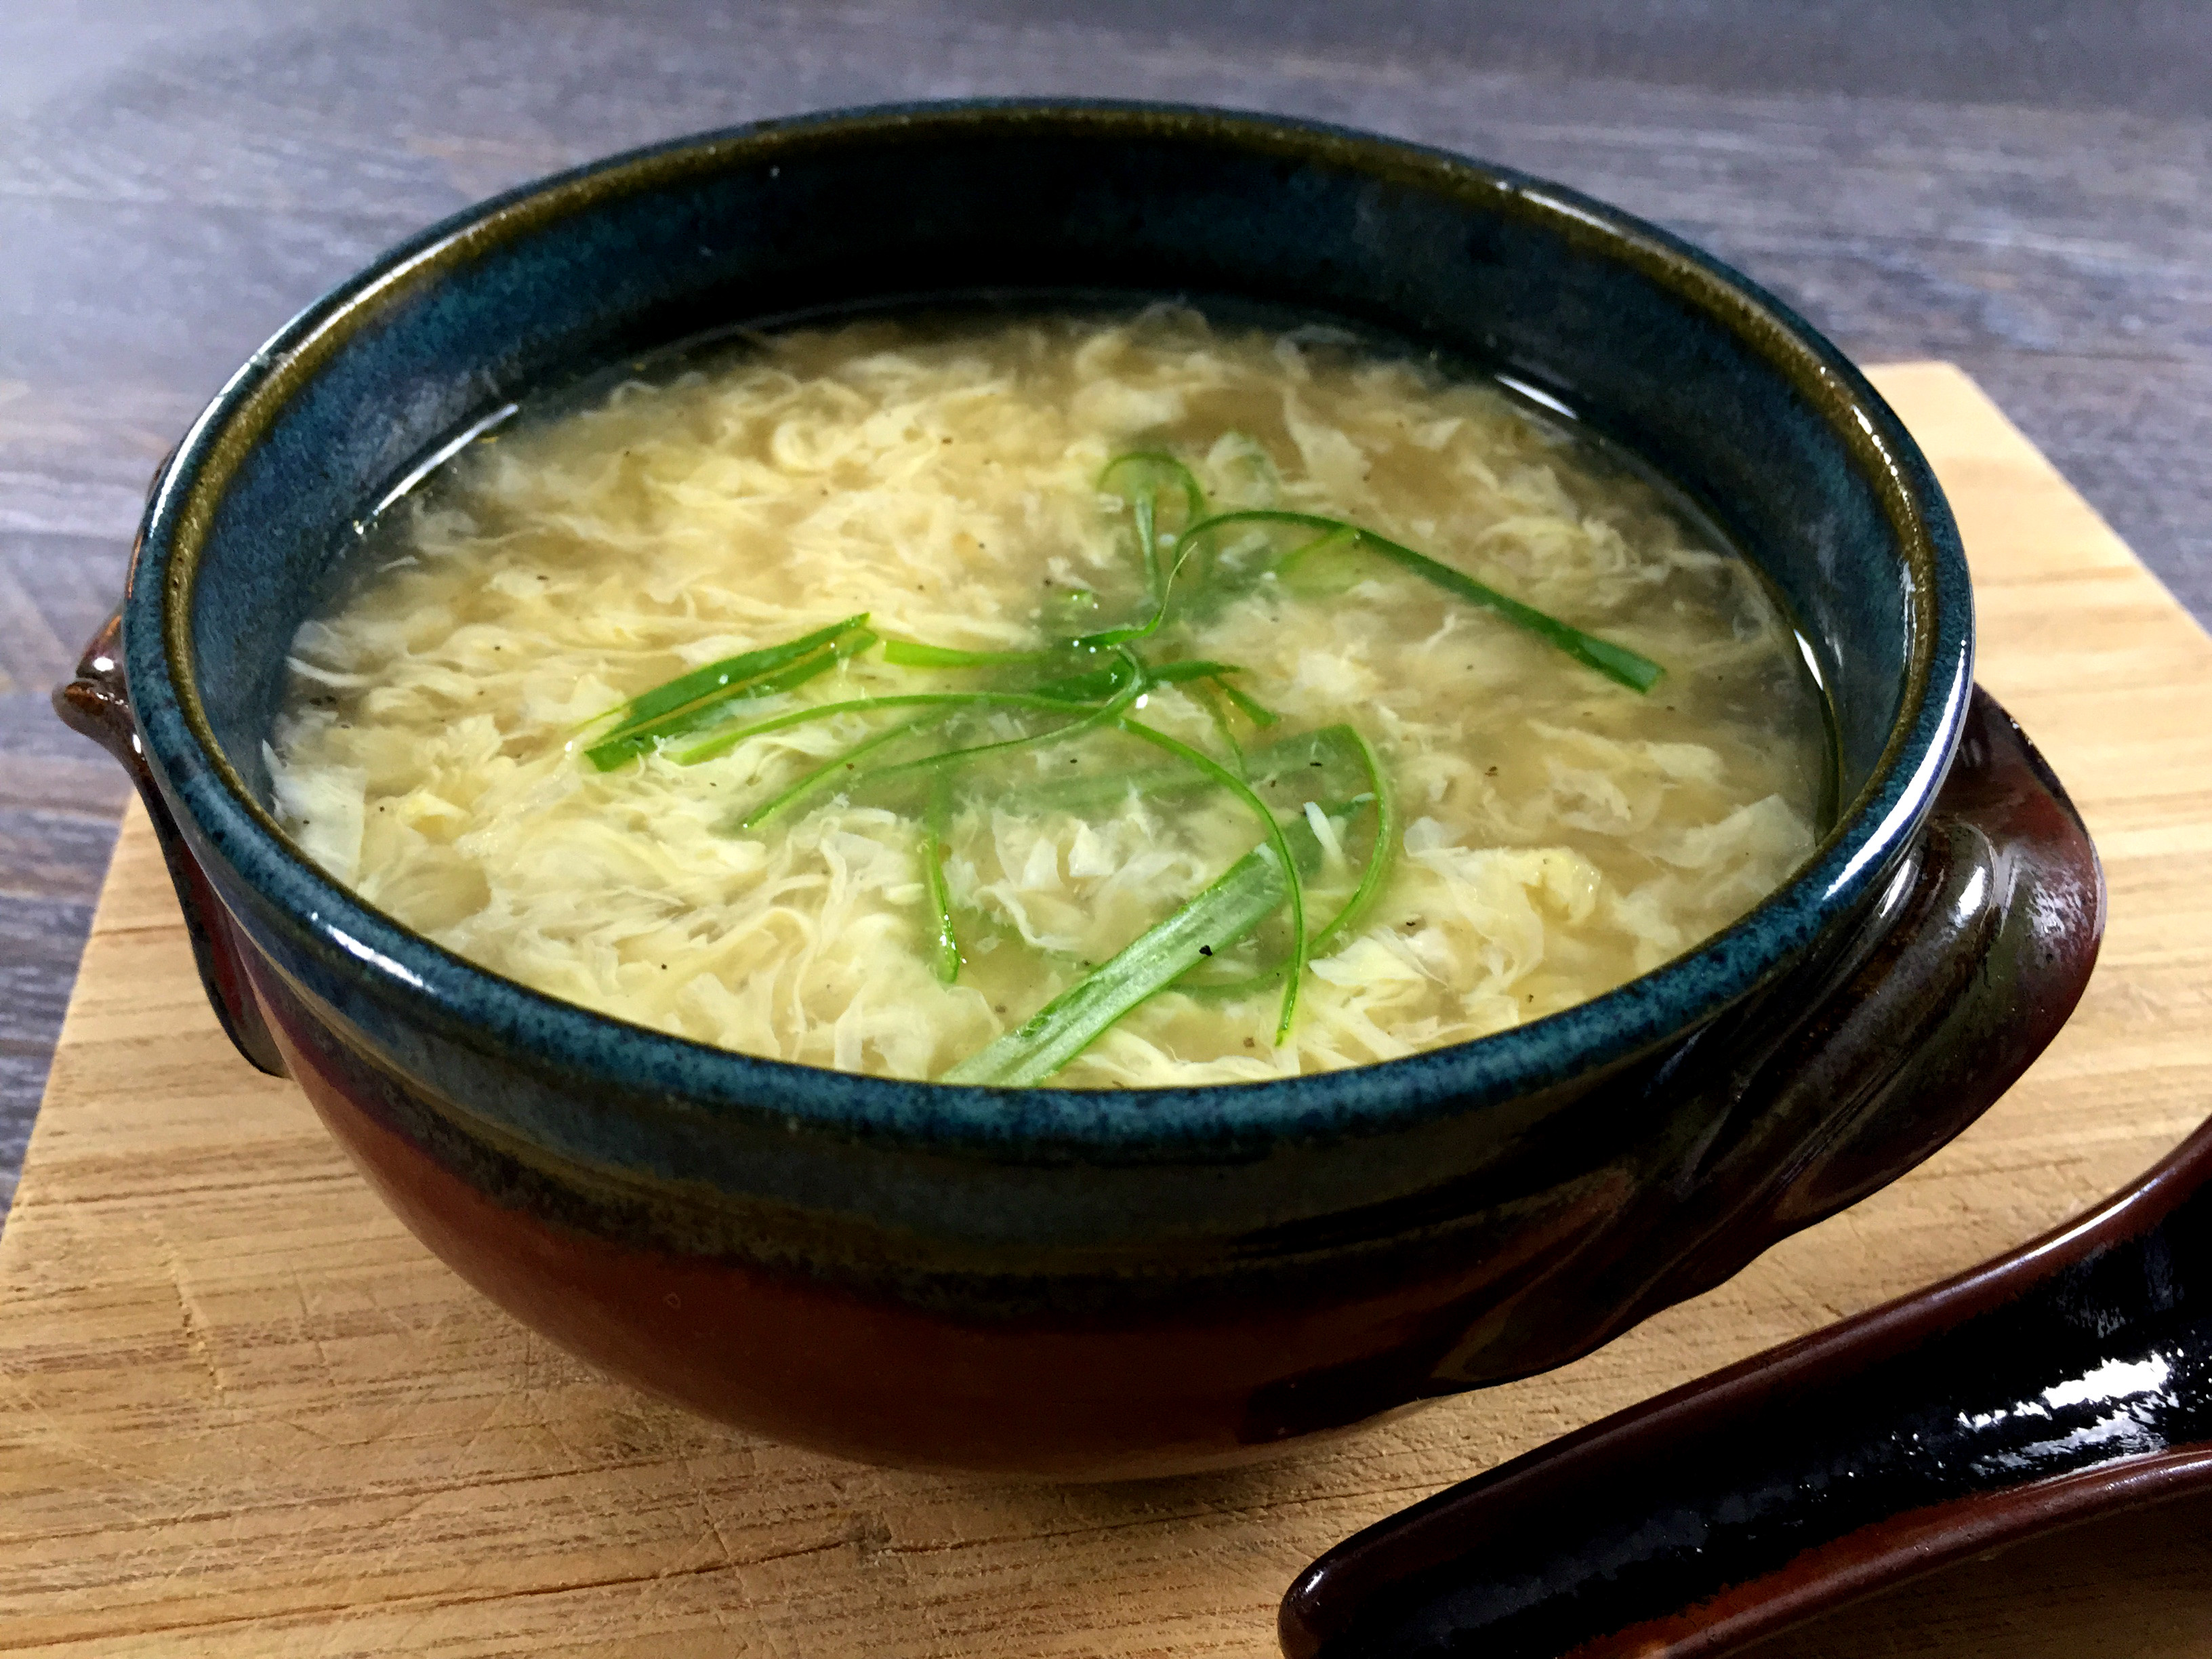 How to Make Egg Drop Soup - Home or Restaurant Style